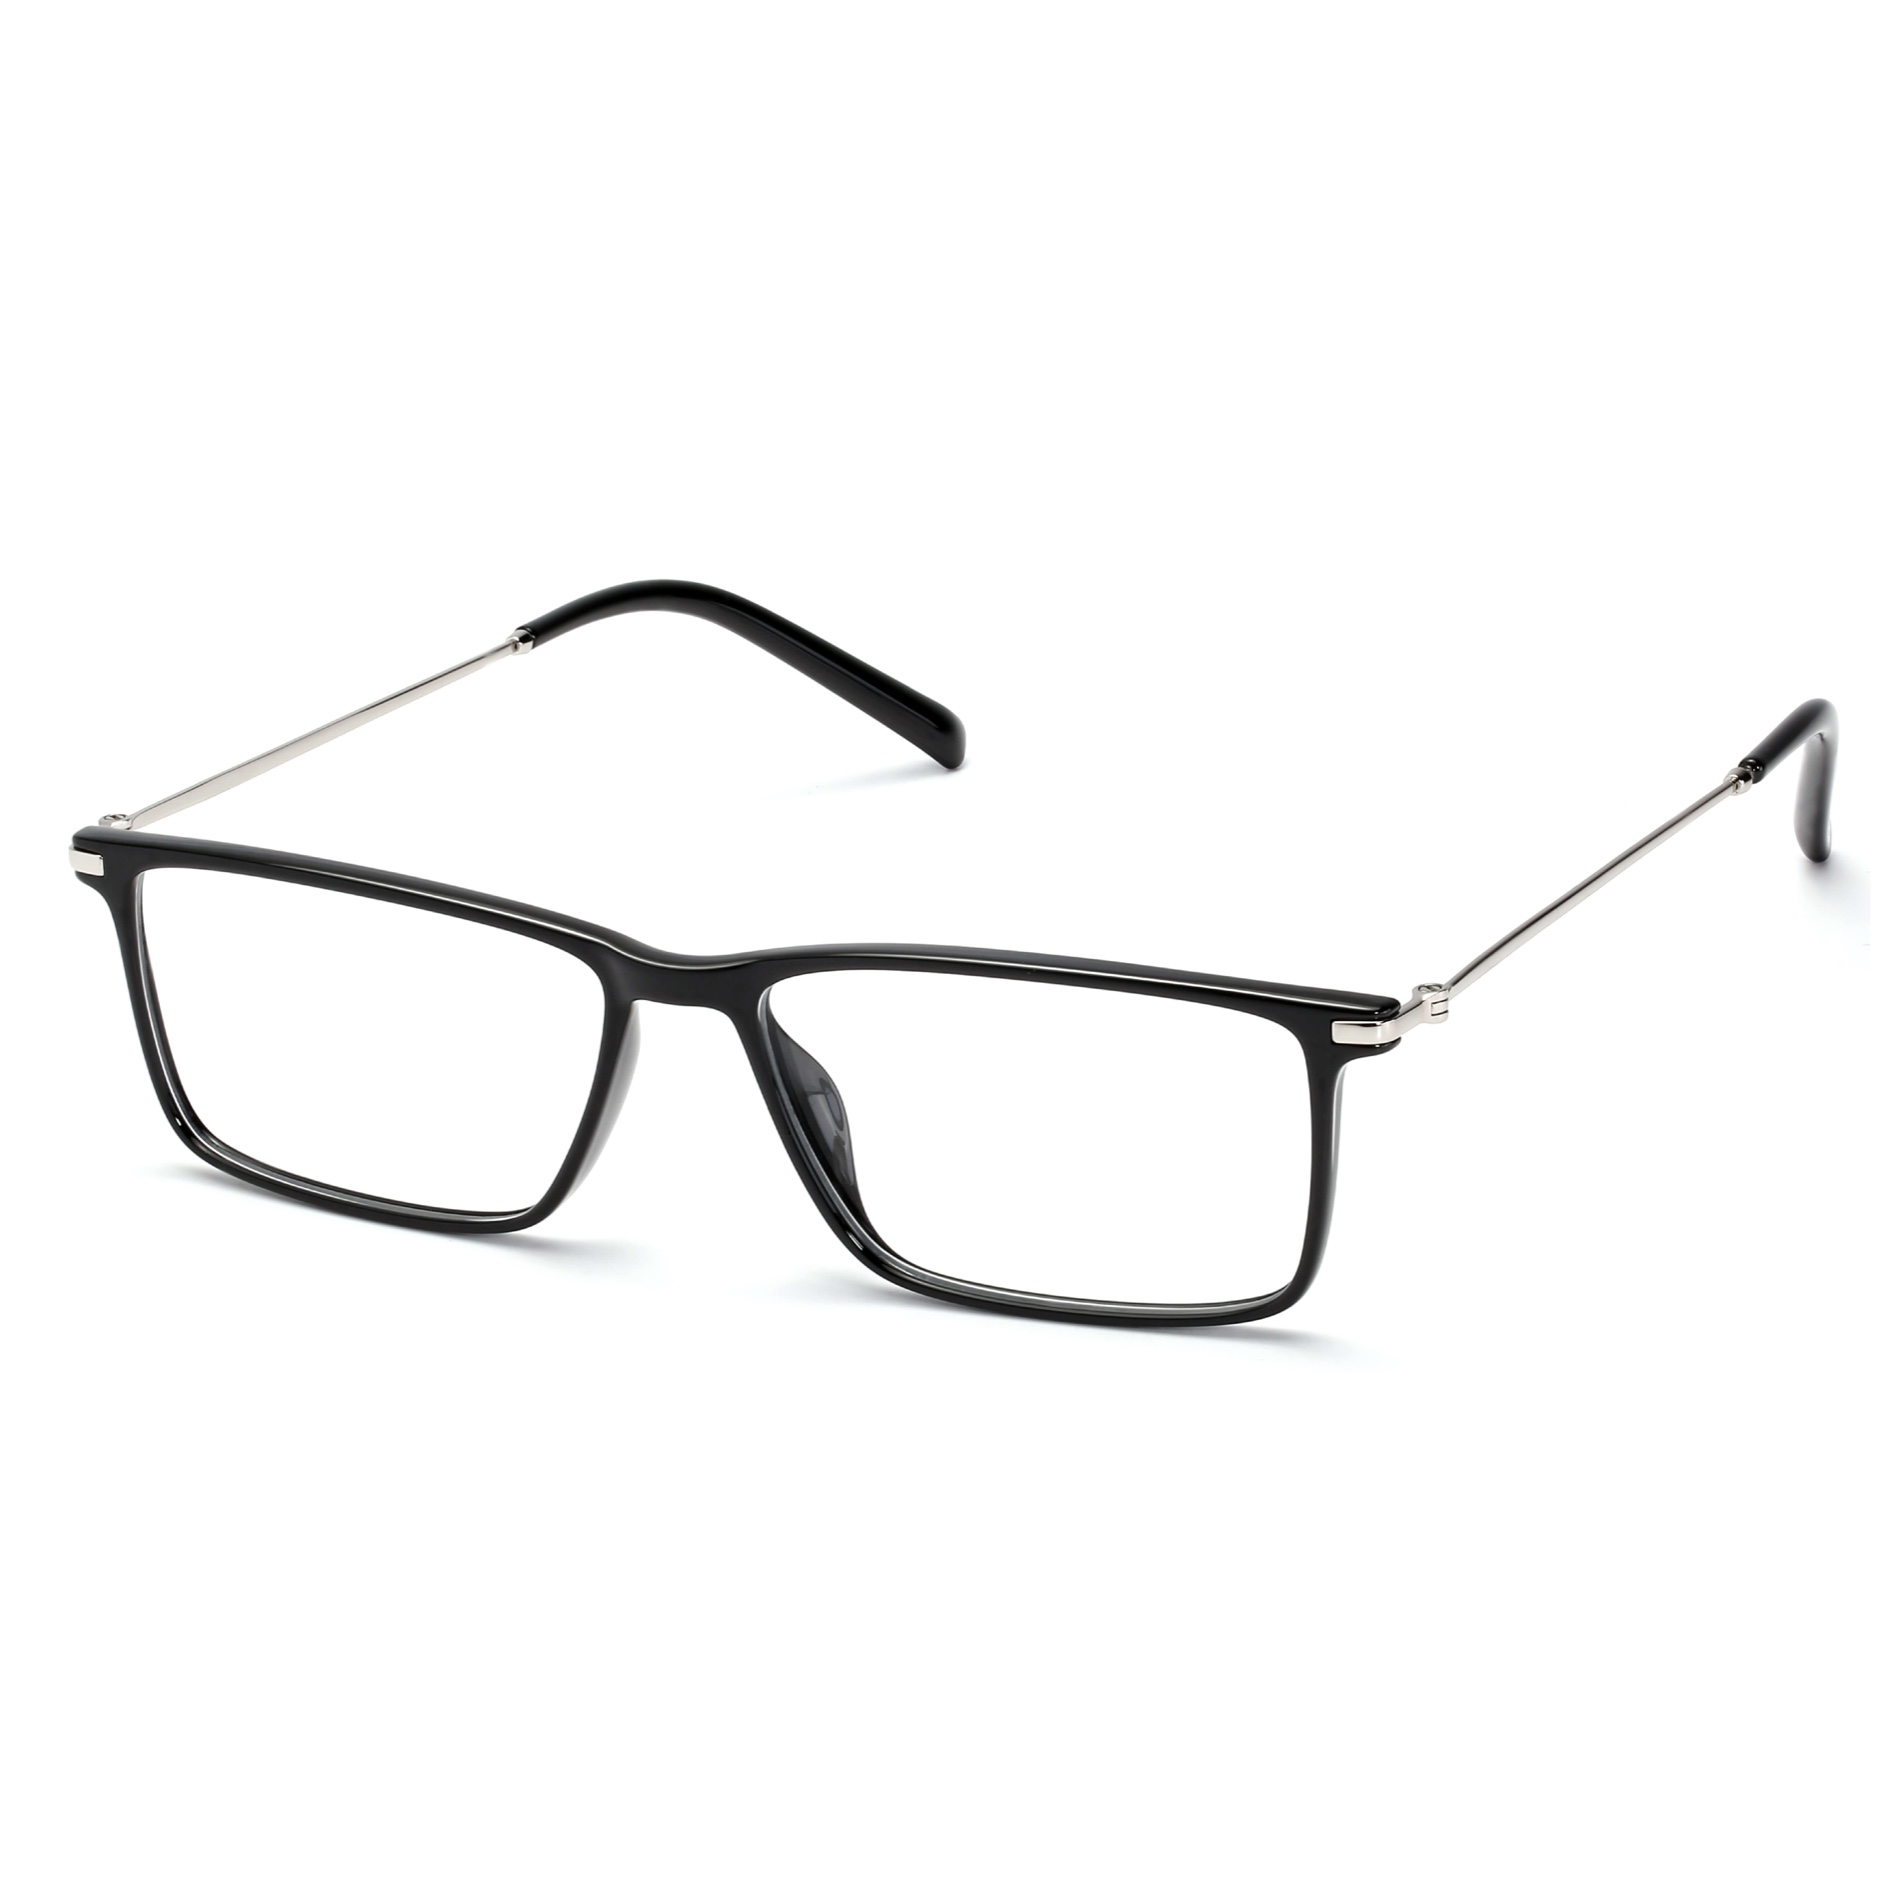 Lifestyle ß-Plastic Optical Frame and Metal Temple Super Thin Optiacl Frame Manufacturers, Lifestyle ß-Plastic Optical Frame and Metal Temple Super Thin Optiacl Frame Factory, Supply Lifestyle ß-Plastic Optical Frame and Metal Temple Super Thin Optiacl Frame